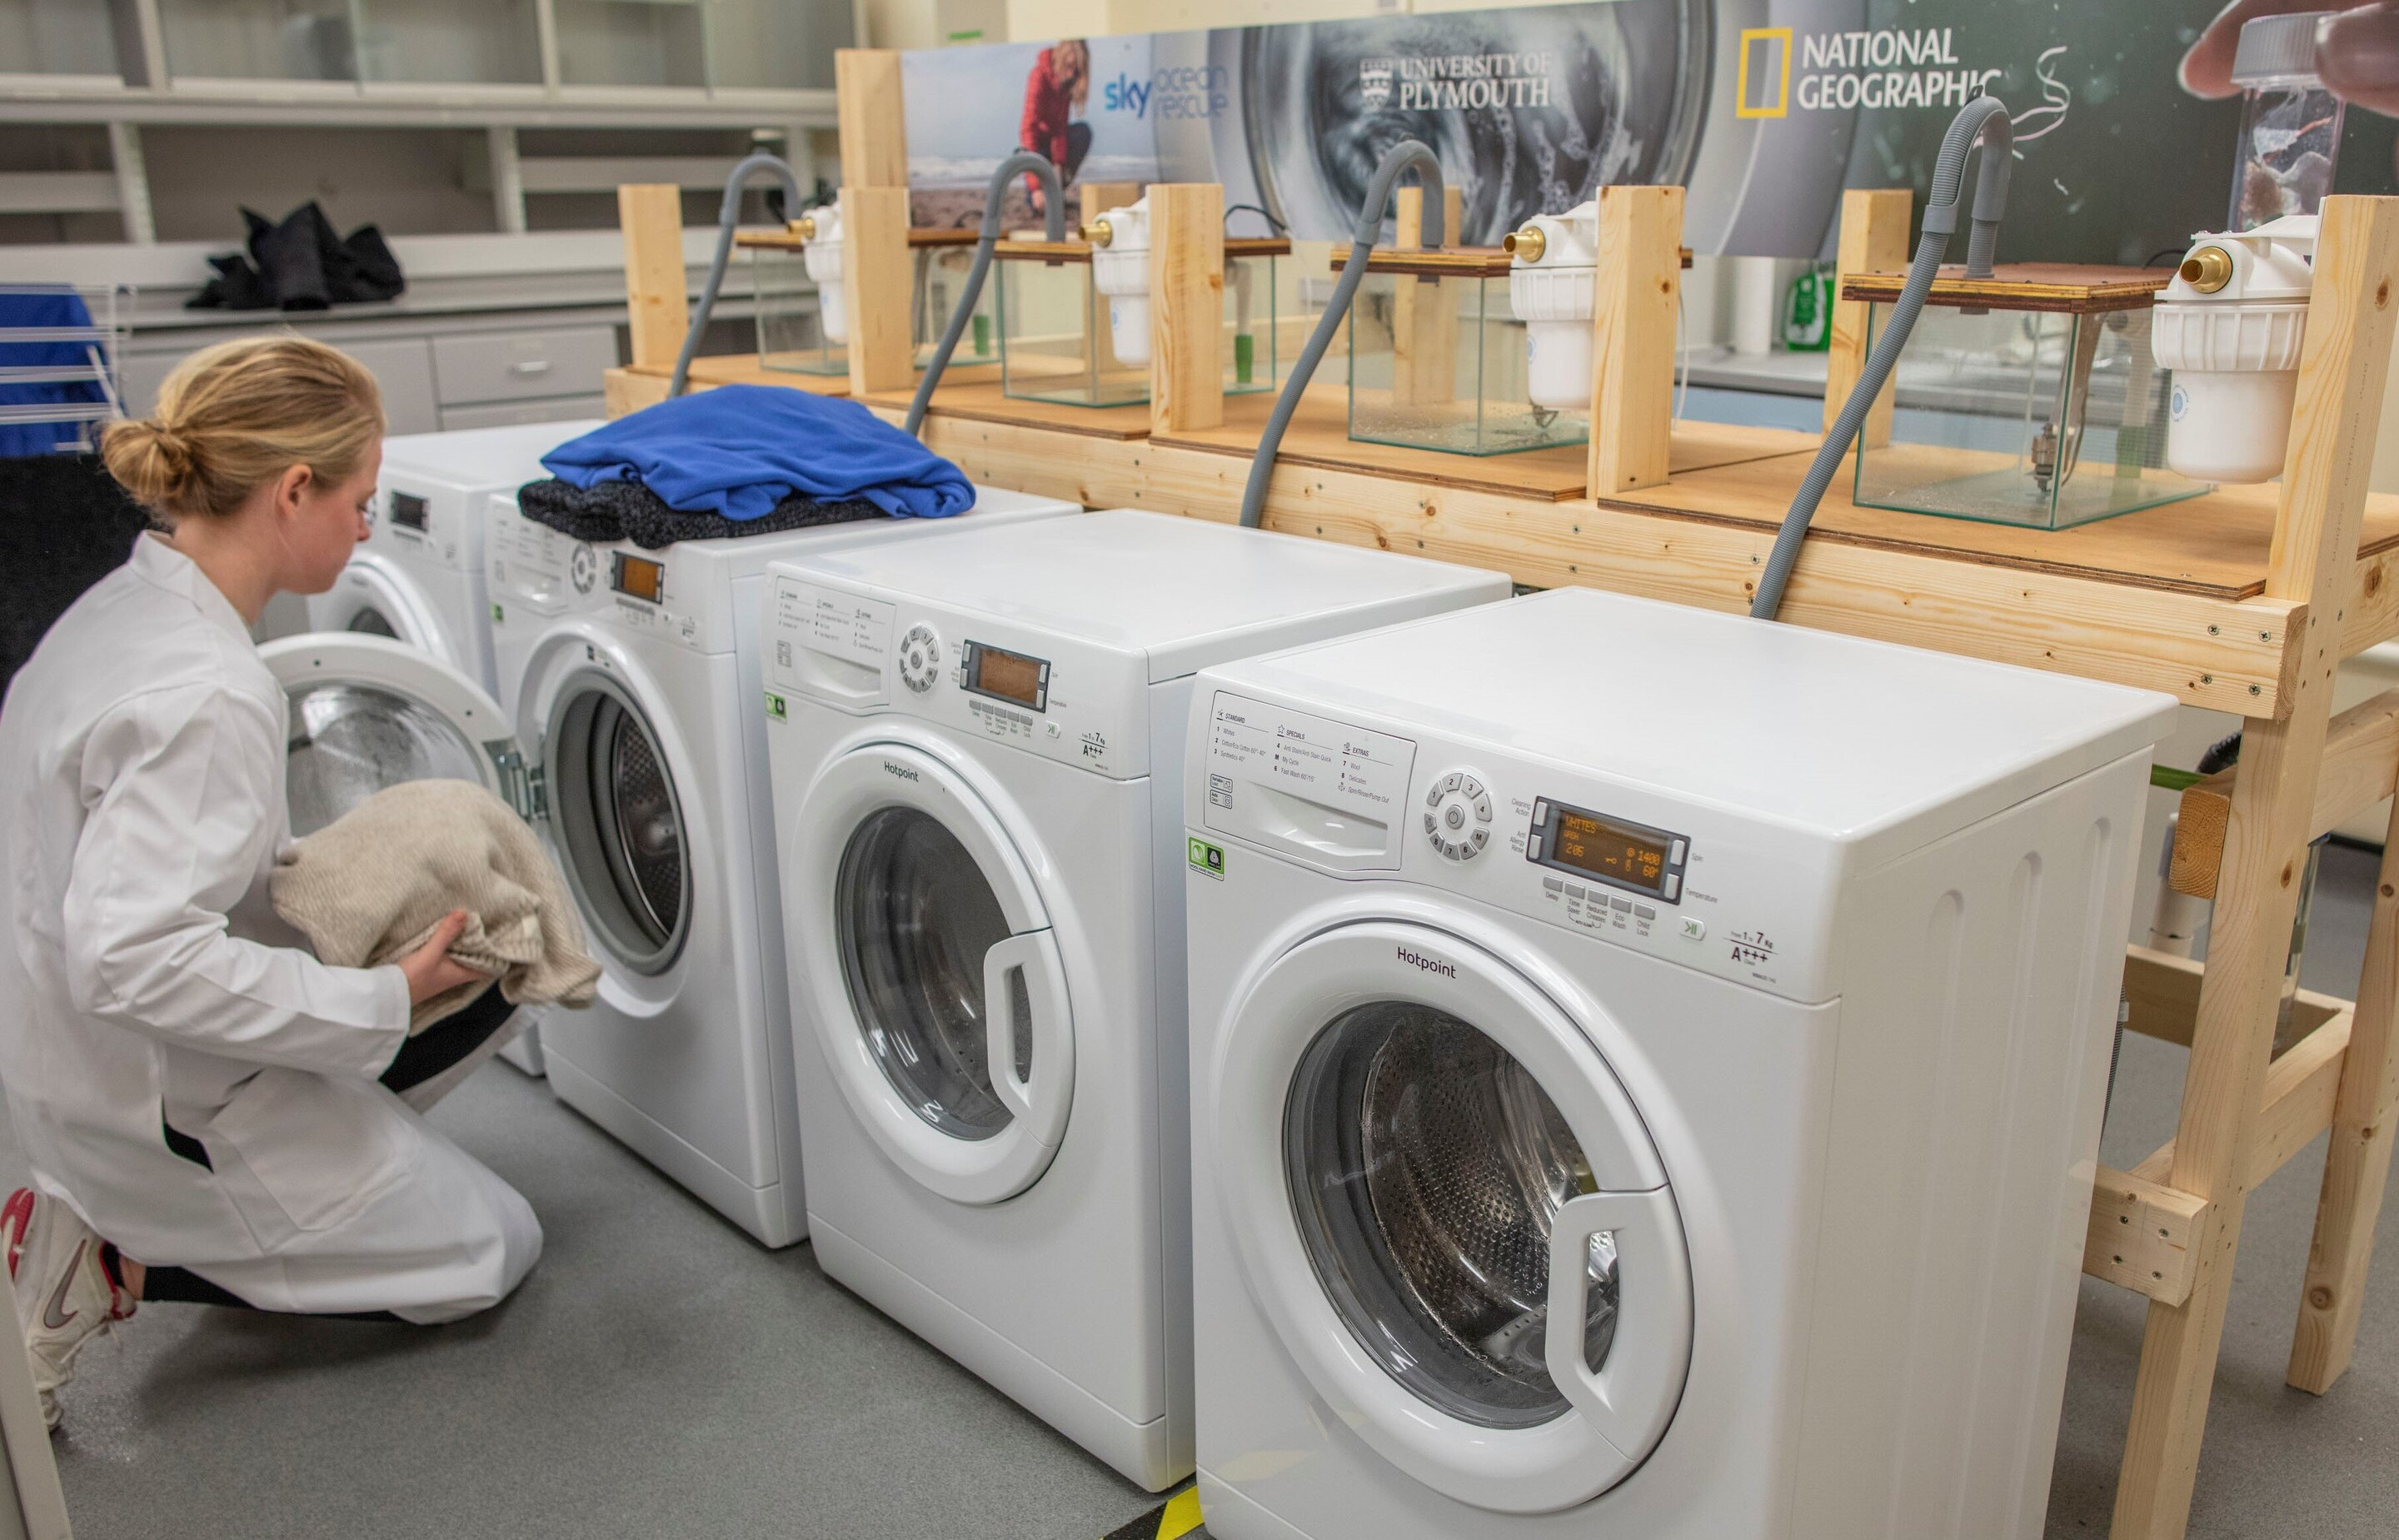 Devices can reduce fibers produced in laundry cycle by up to 80%